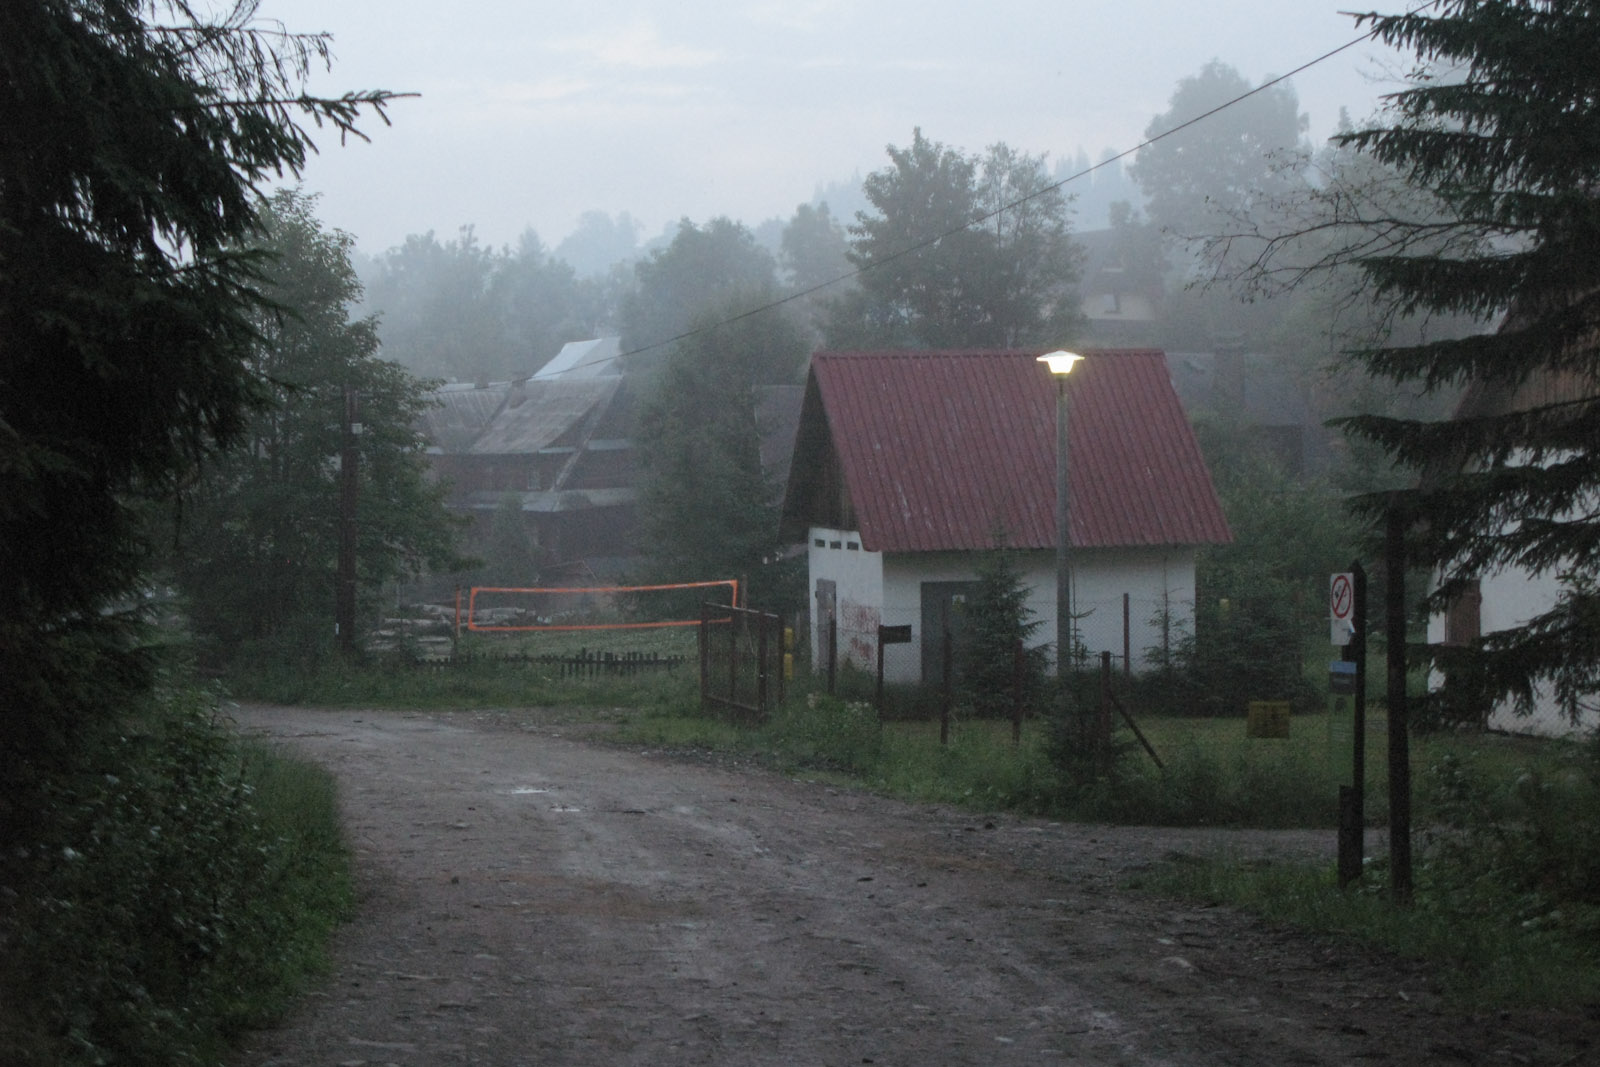 Małe Ciche (Small Silent) village in Tatra